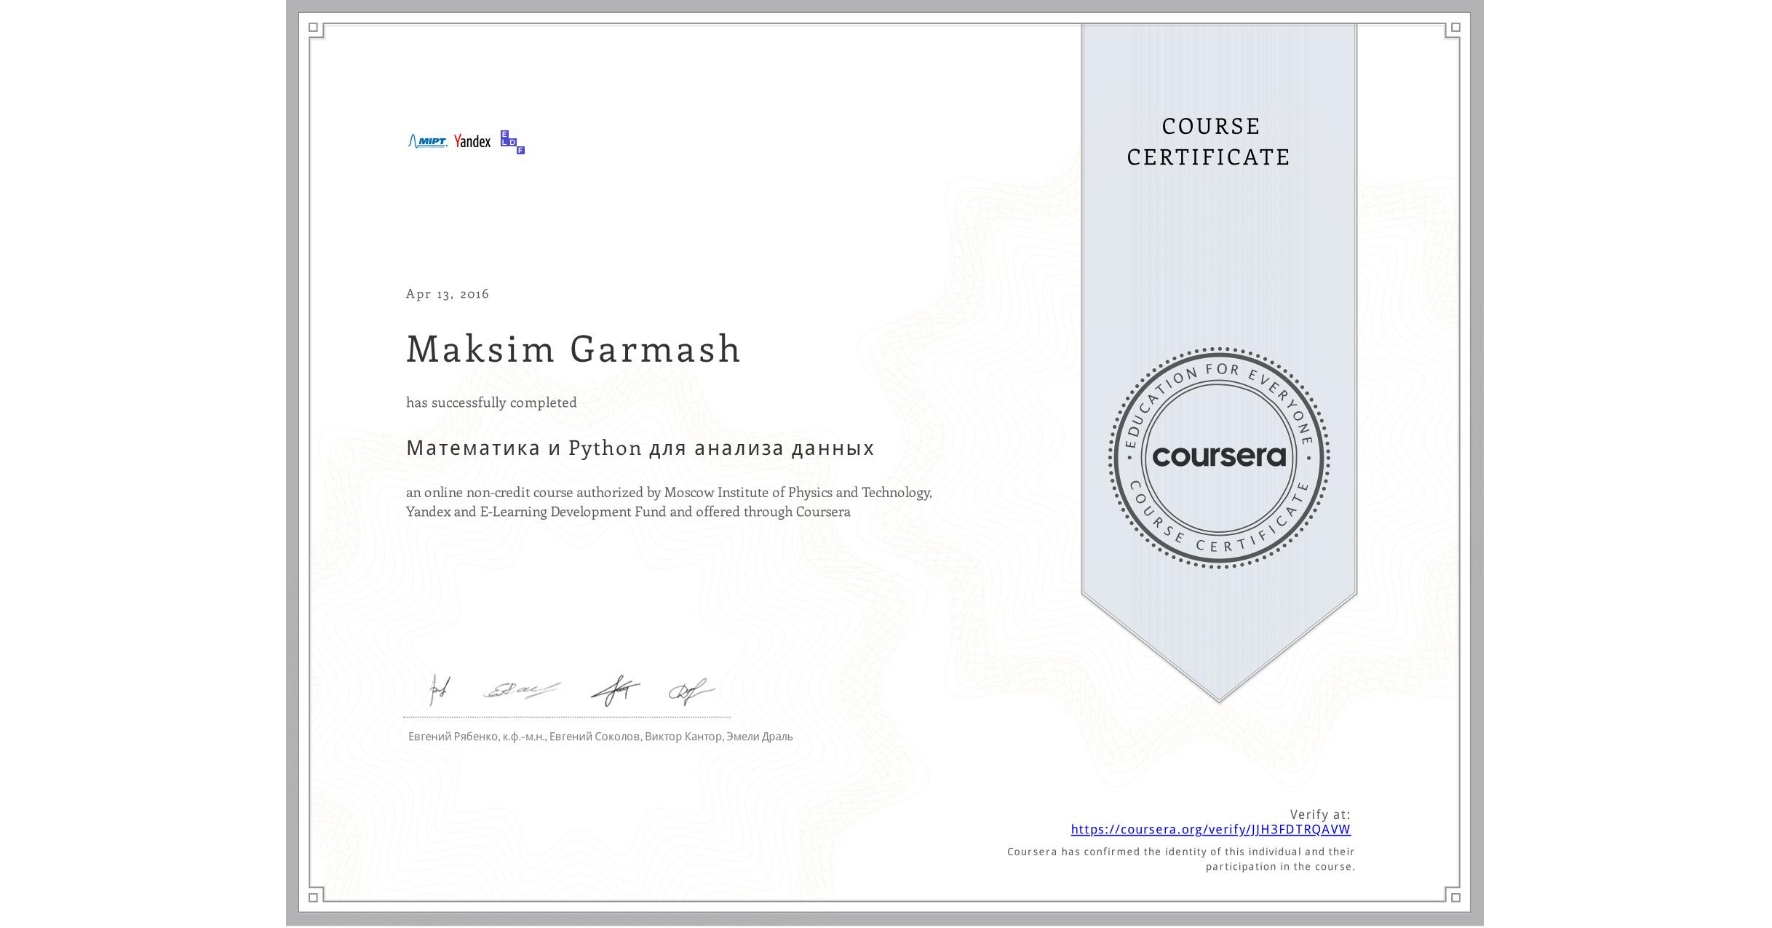 View certificate for Maksim Garmash, Математика и Python для анализа данных, an online non-credit course authorized by Moscow Institute of Physics and Technology, Yandex & E-Learning Development Fund and offered through Coursera